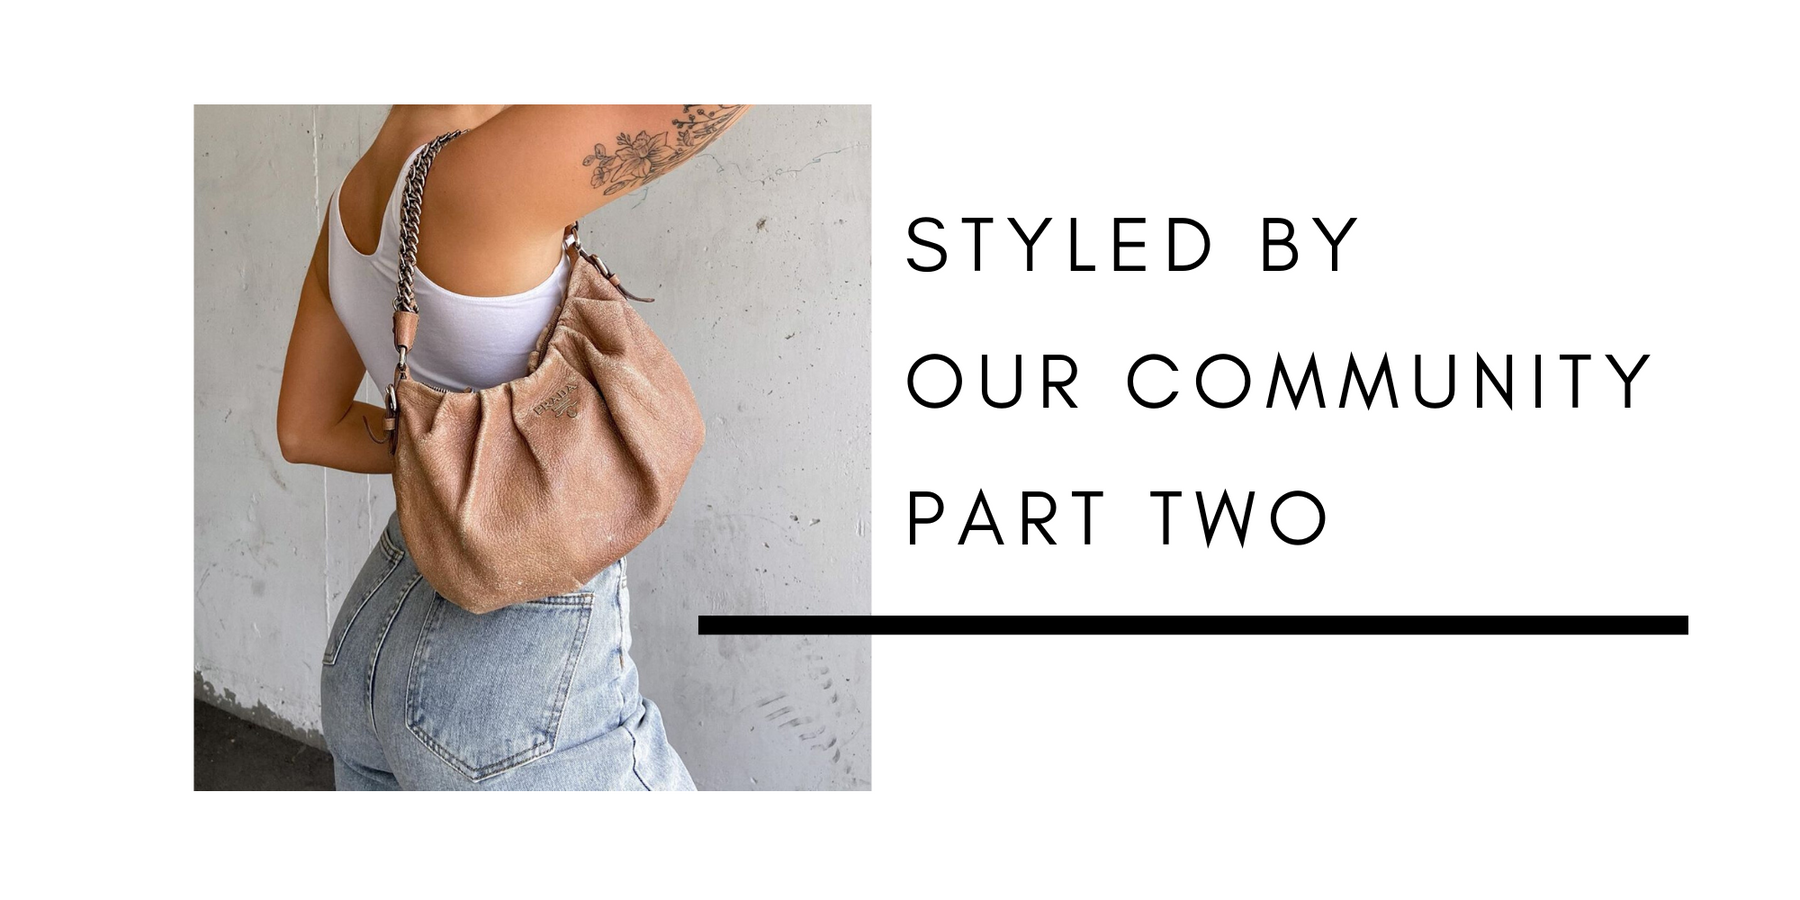 STYLED BY OUR COMMUNITY PART II